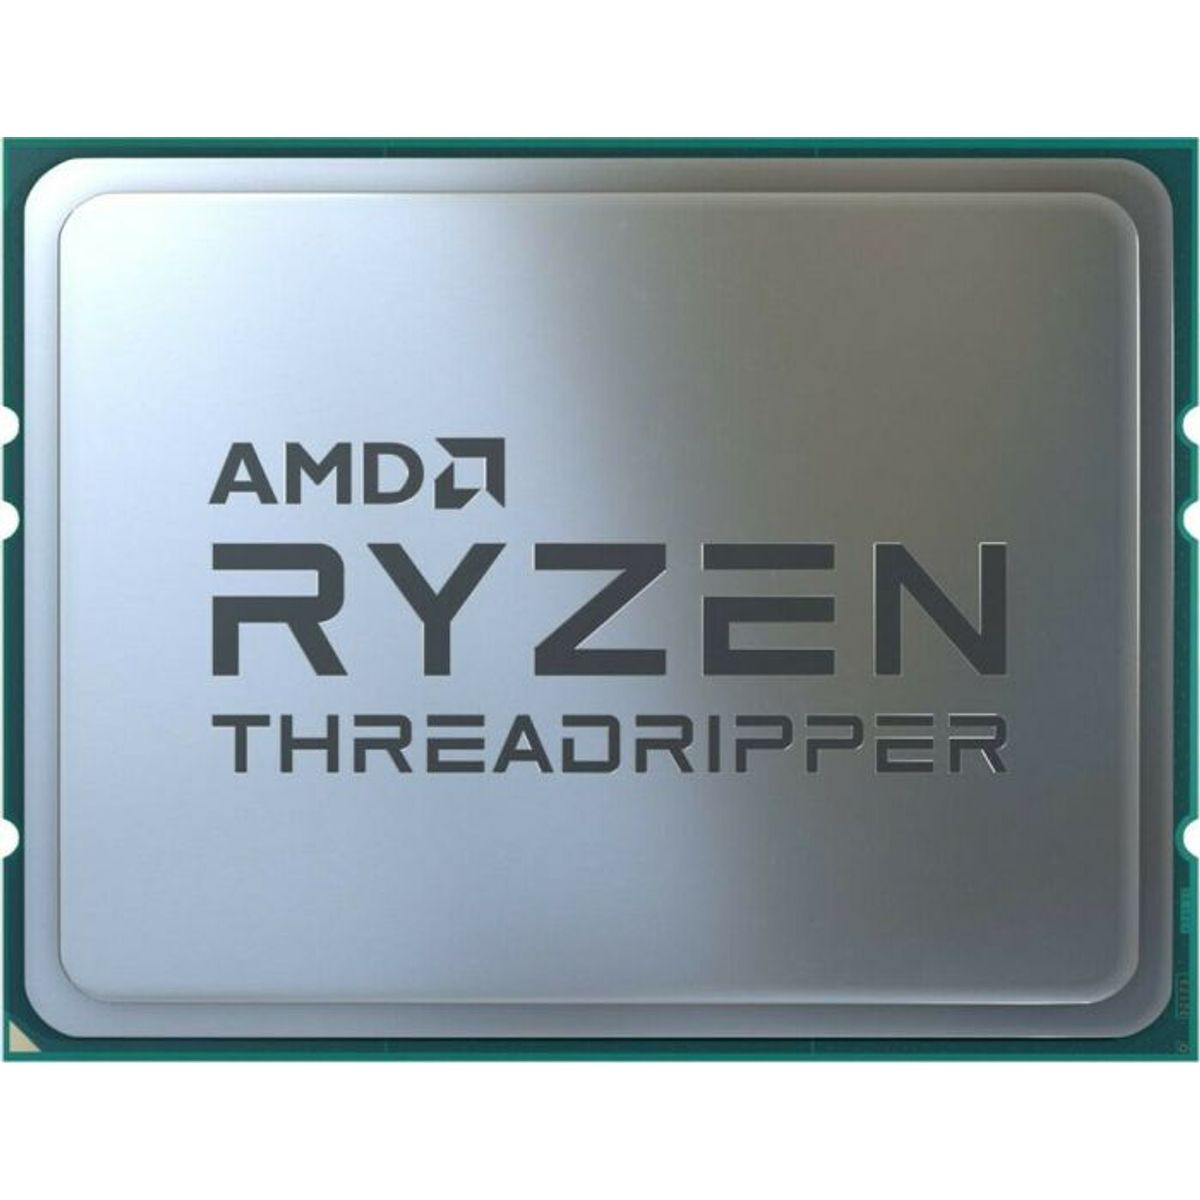 AMD Ryzen Threadripper 3960x (24 Kerne, Turbo Boost mit bis zu 4.5GHz, 280W)